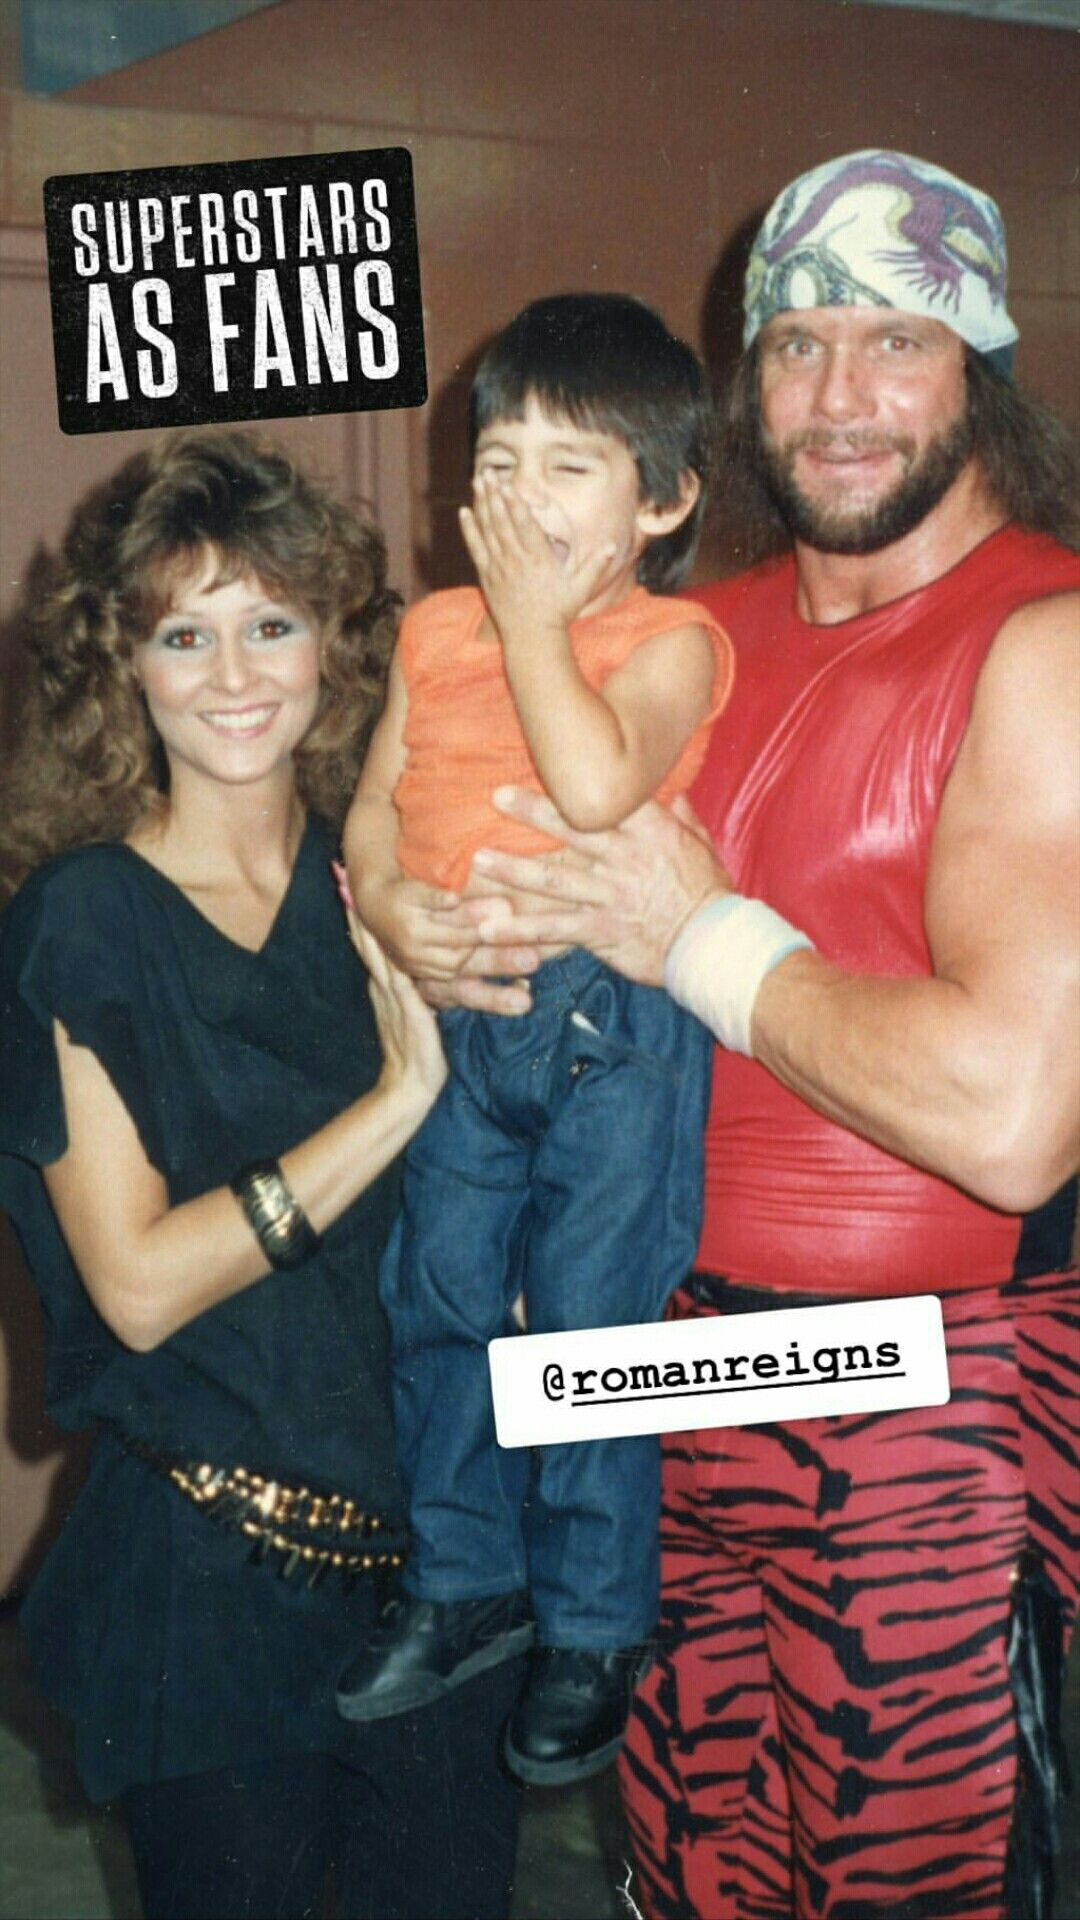 Classic Photo Of Wwe Hall Of Fame Legend Macho Man Randy Savage And His Wife Miss Elizabeth Roman Reigns Family Wwe Superstar Roman Reigns Roman Reigns Wife